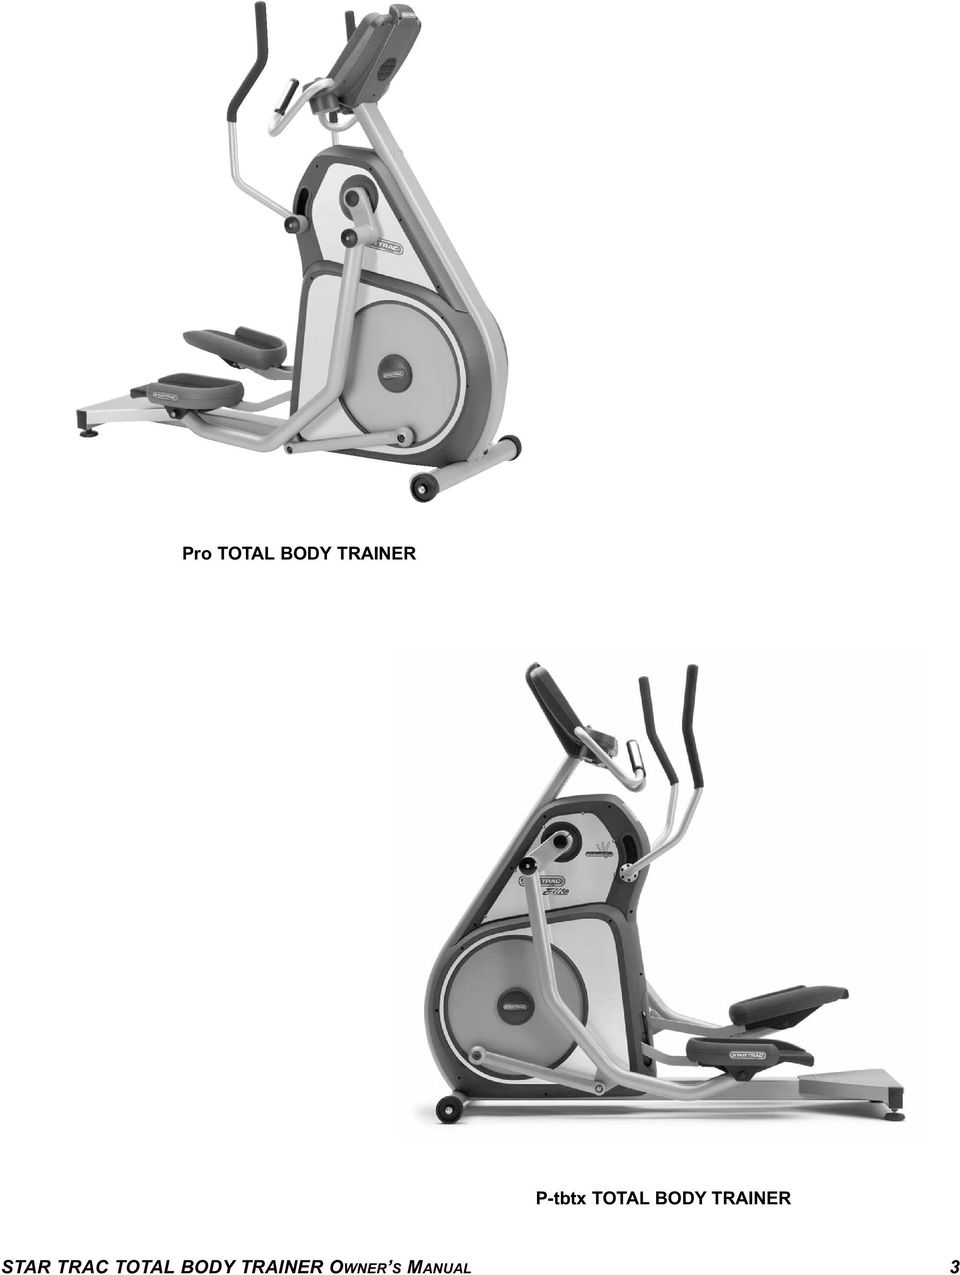 Star Trac Fitness TM P-TBT Total Body Trainer P-TBTx Total